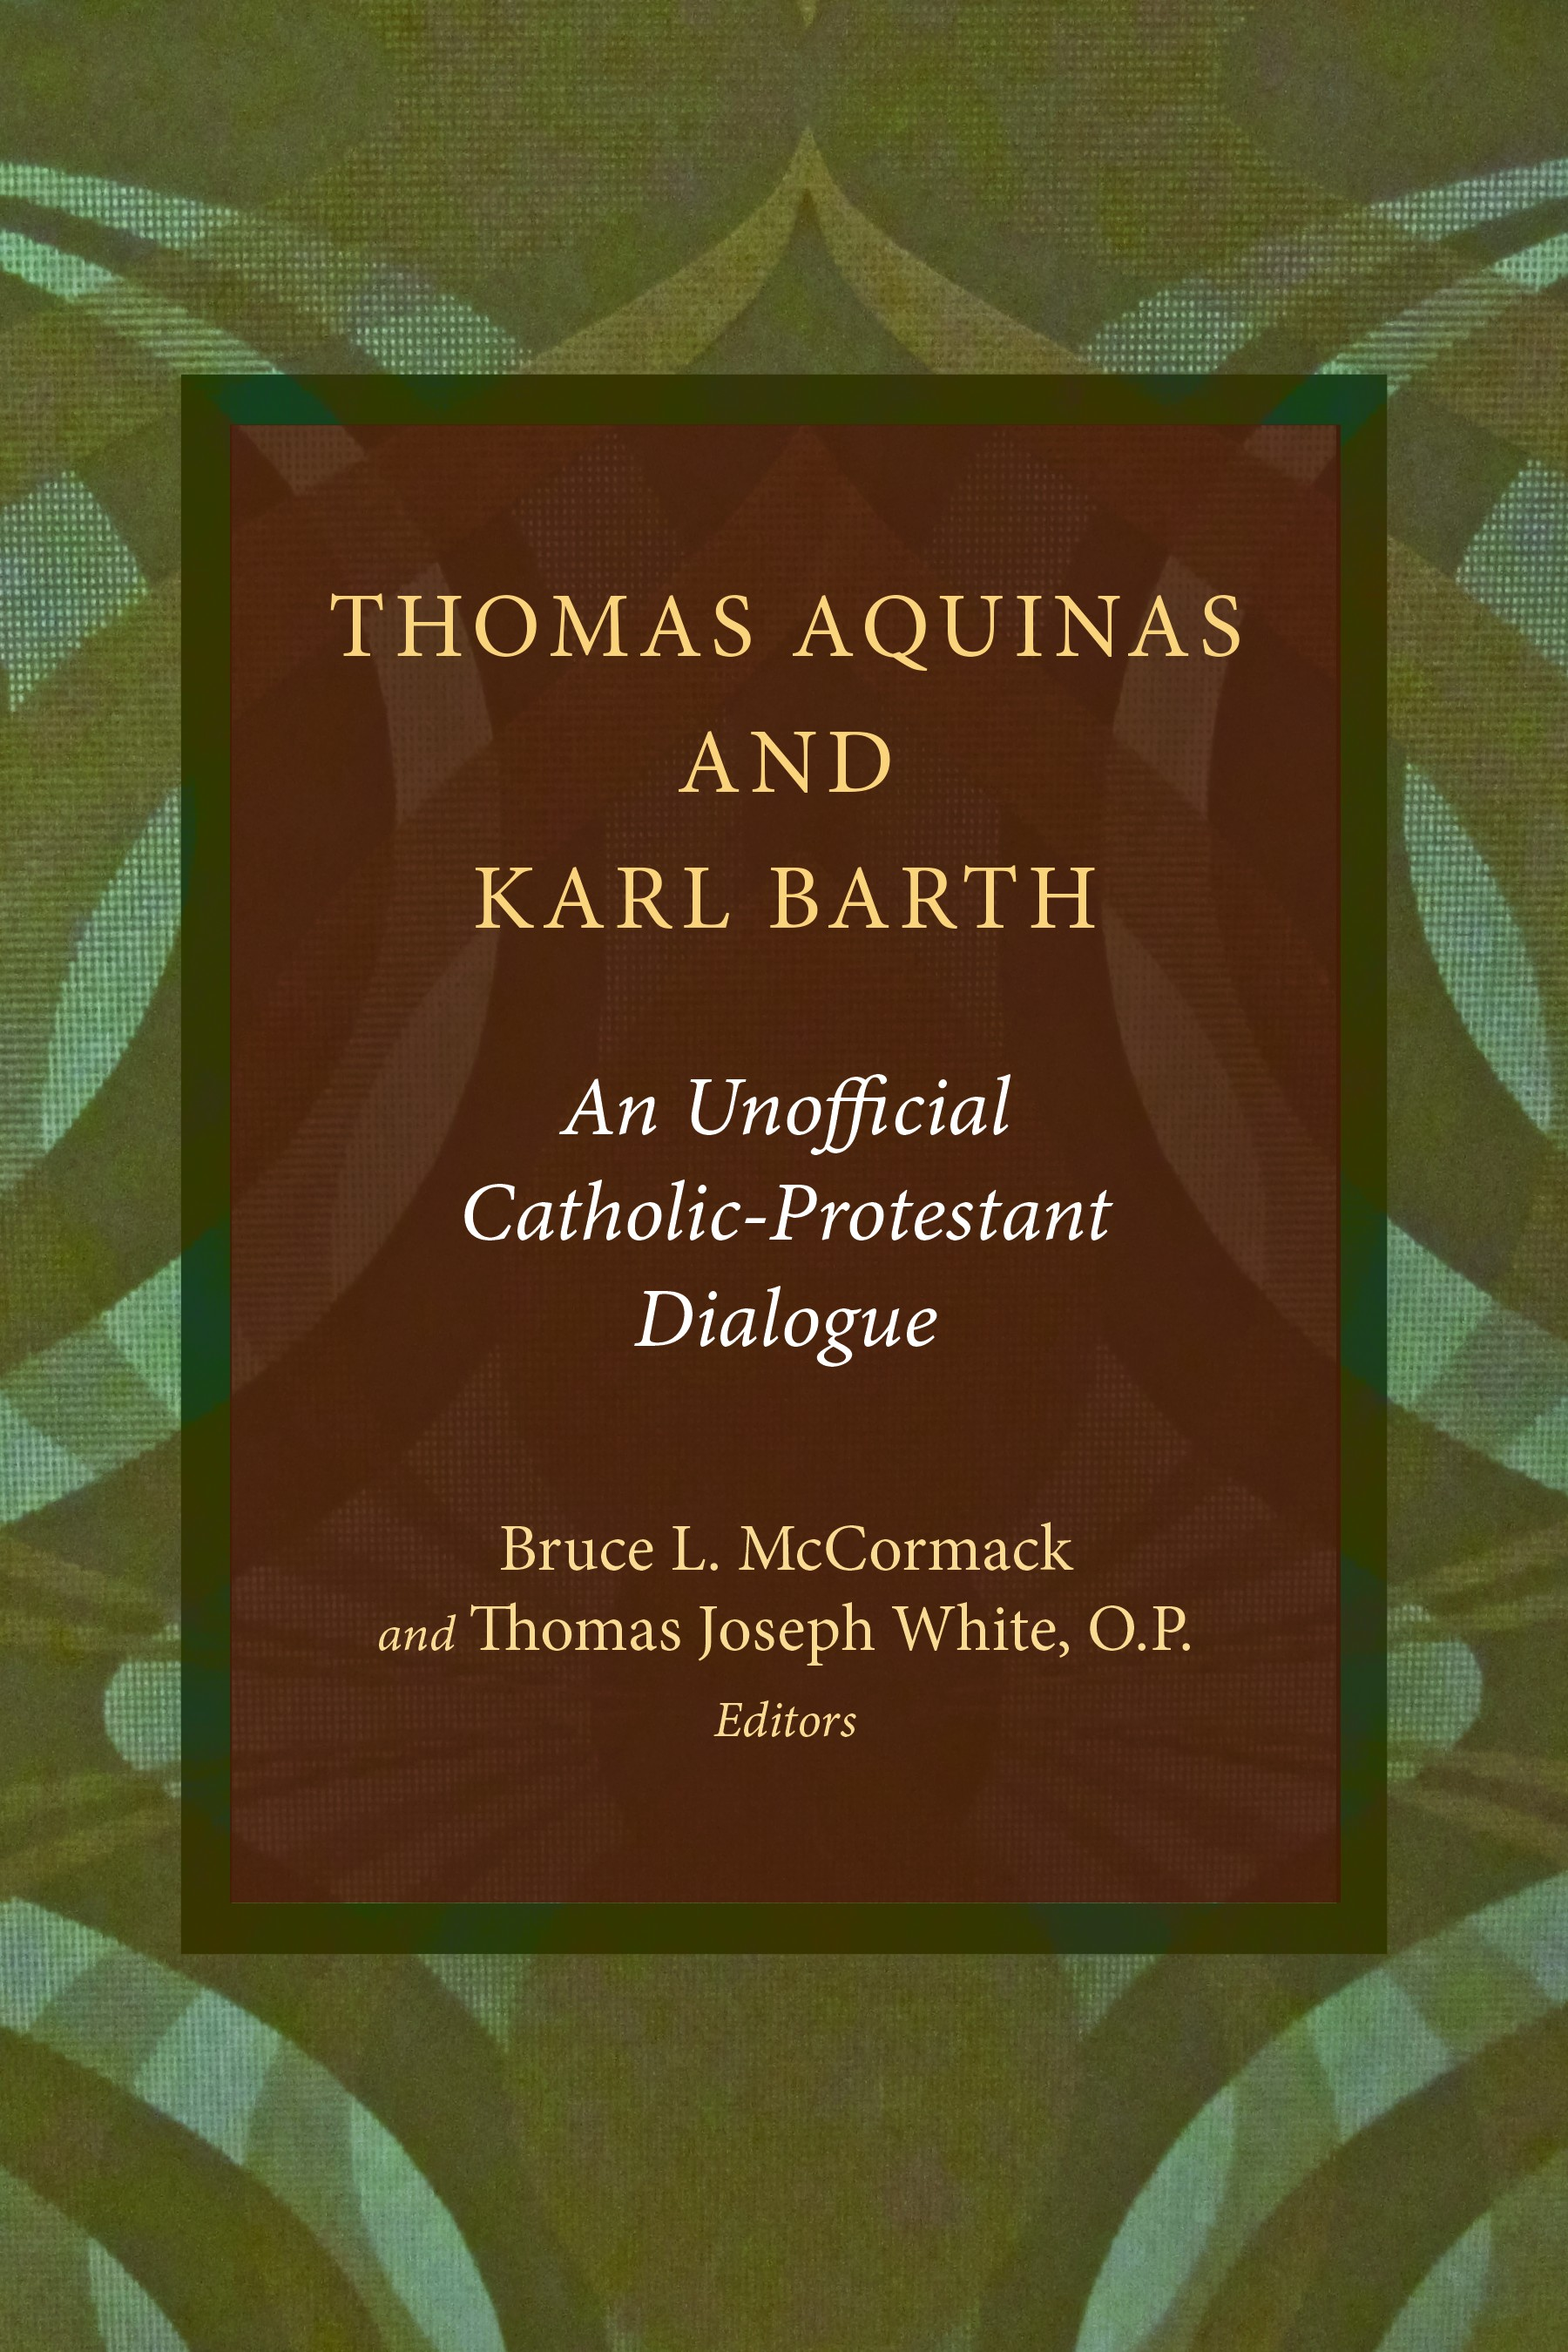 Thomas Aquinas and Karl Barth